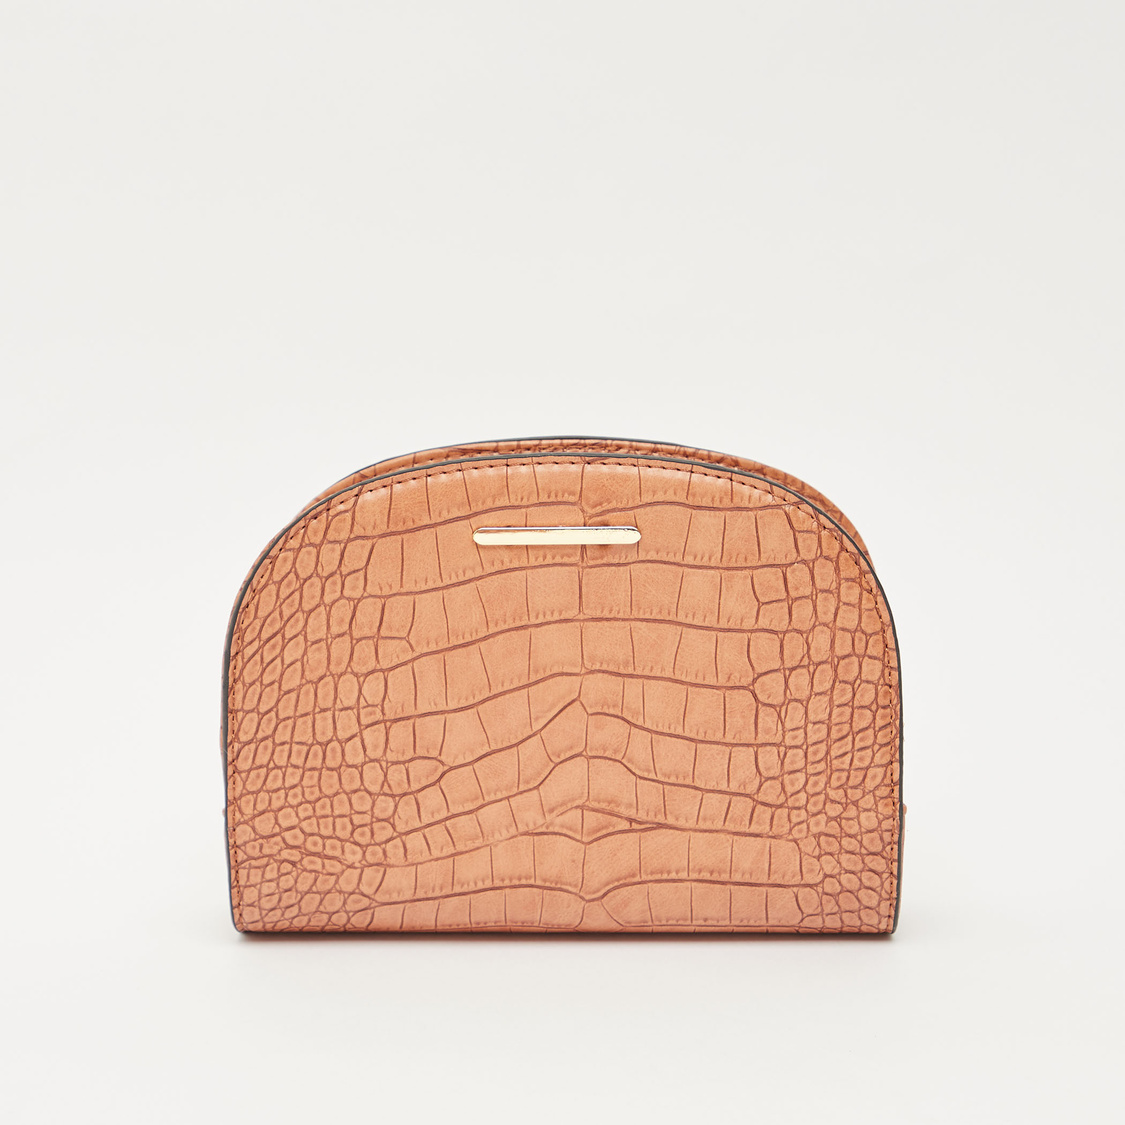 Textured Crossbody Bag with Adjustable Straps and Zip Closure